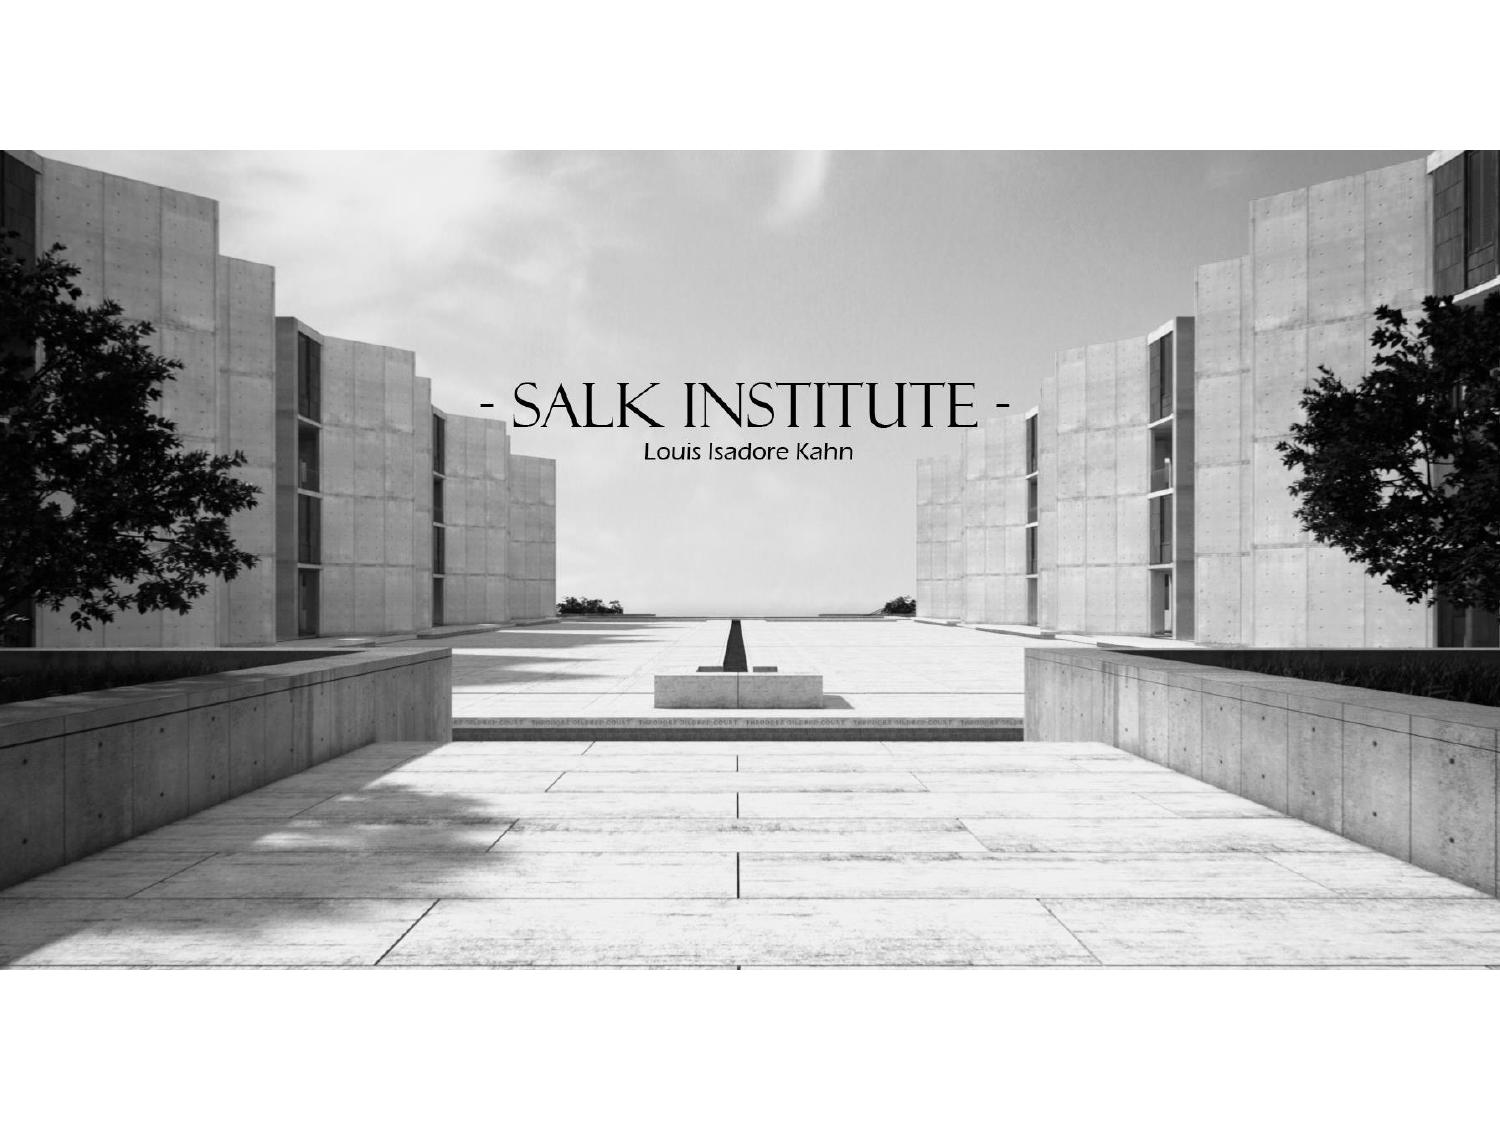 louis kahn the salk institute and In 1959, jonas salk, the man who had discovered the vaccine for polio, approached louis i kahn with a project the city of la jolla, california had provided him with a picturesque site along the pacific coast, where salk intended to found and build a biological research center.